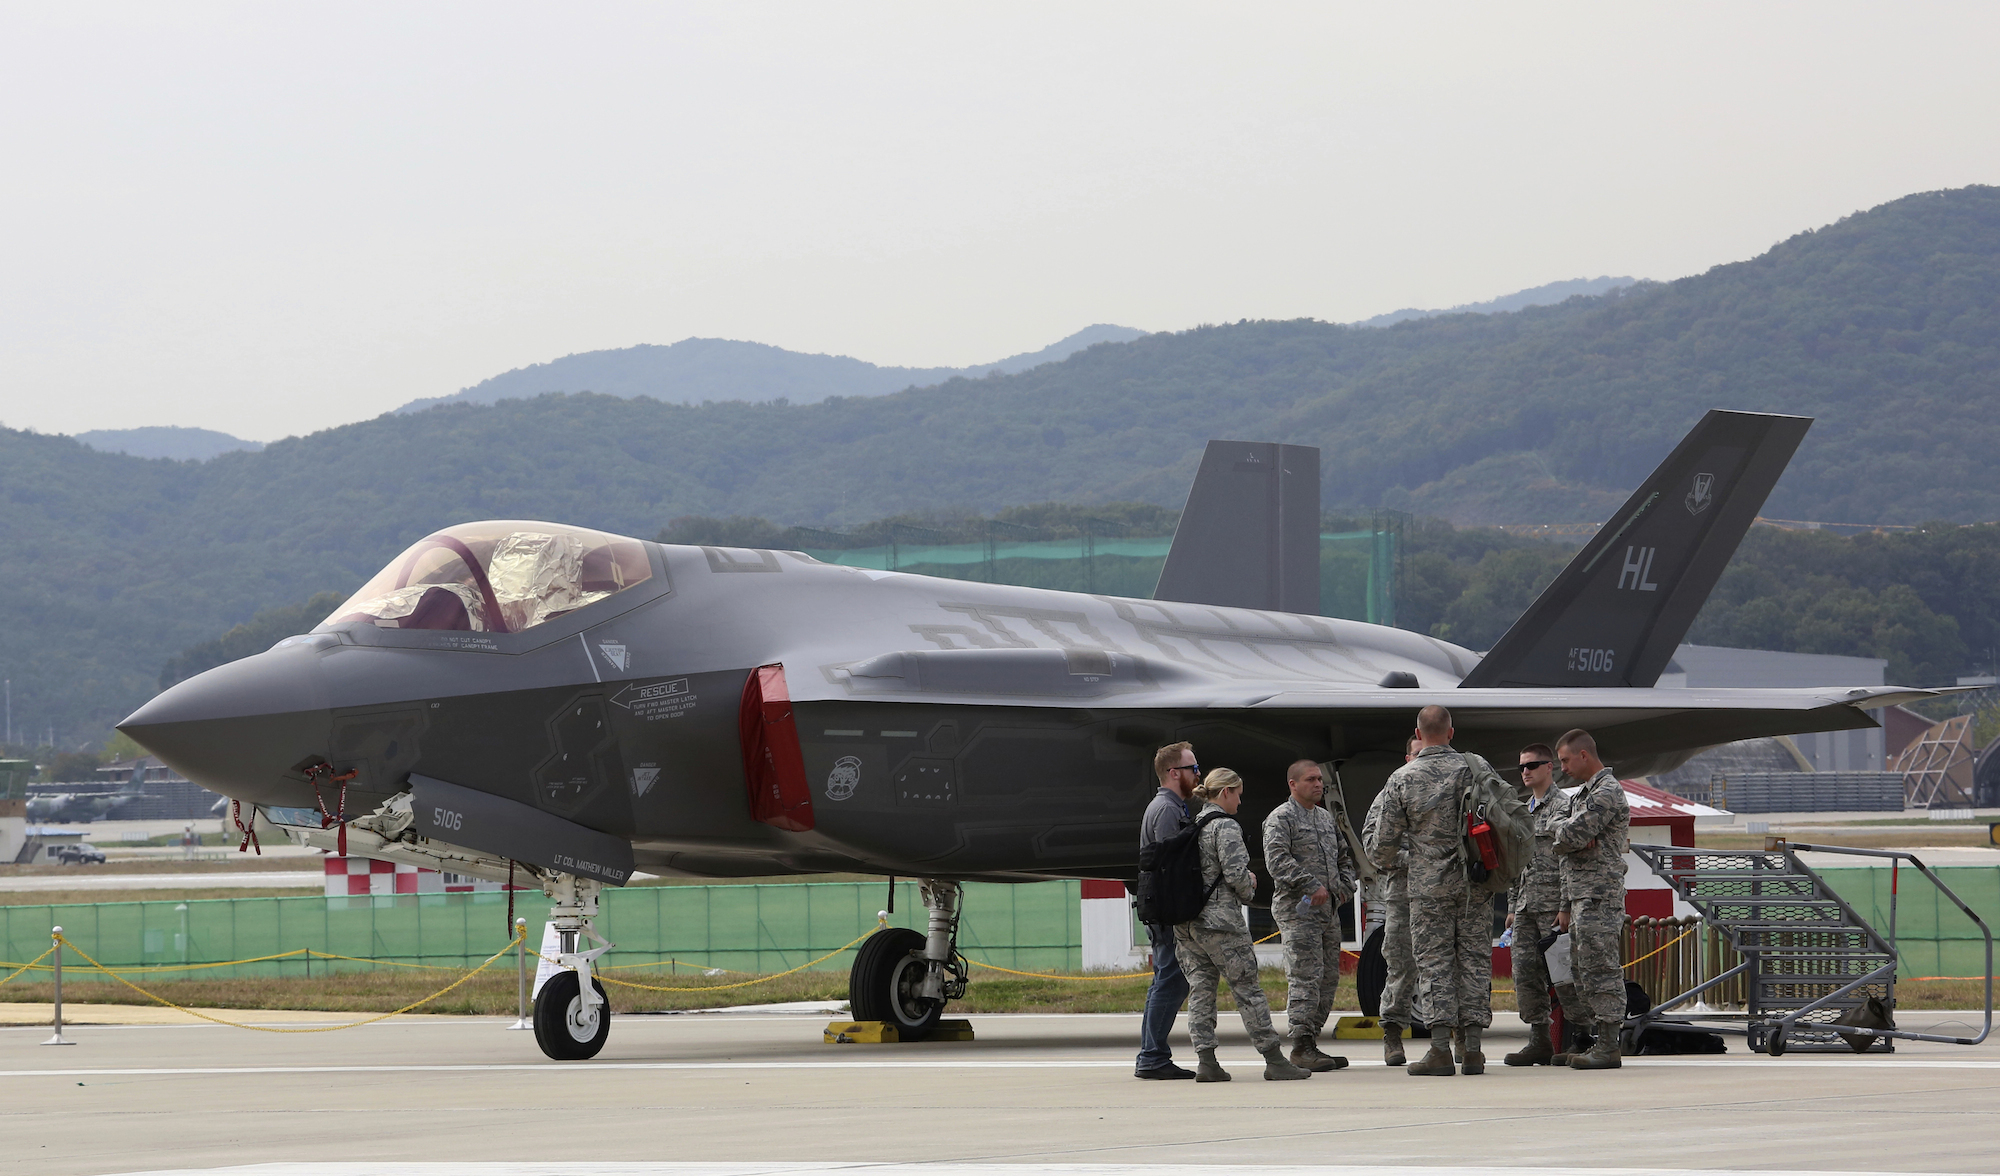 A U.S. F-35 stealth fighter is seen during the press day of the 2017 Seoul International Aerospace and Defense Exhibition at Seoul Airport in Seongnam, South Korea, Monday, Oct. 16. South Korean and U.S. troops launched five days of naval drills on Monday, three days after North Korea renewed its threat to fire missiles near the American territory of Guam. (AP Photo/Ahn Young-joon)